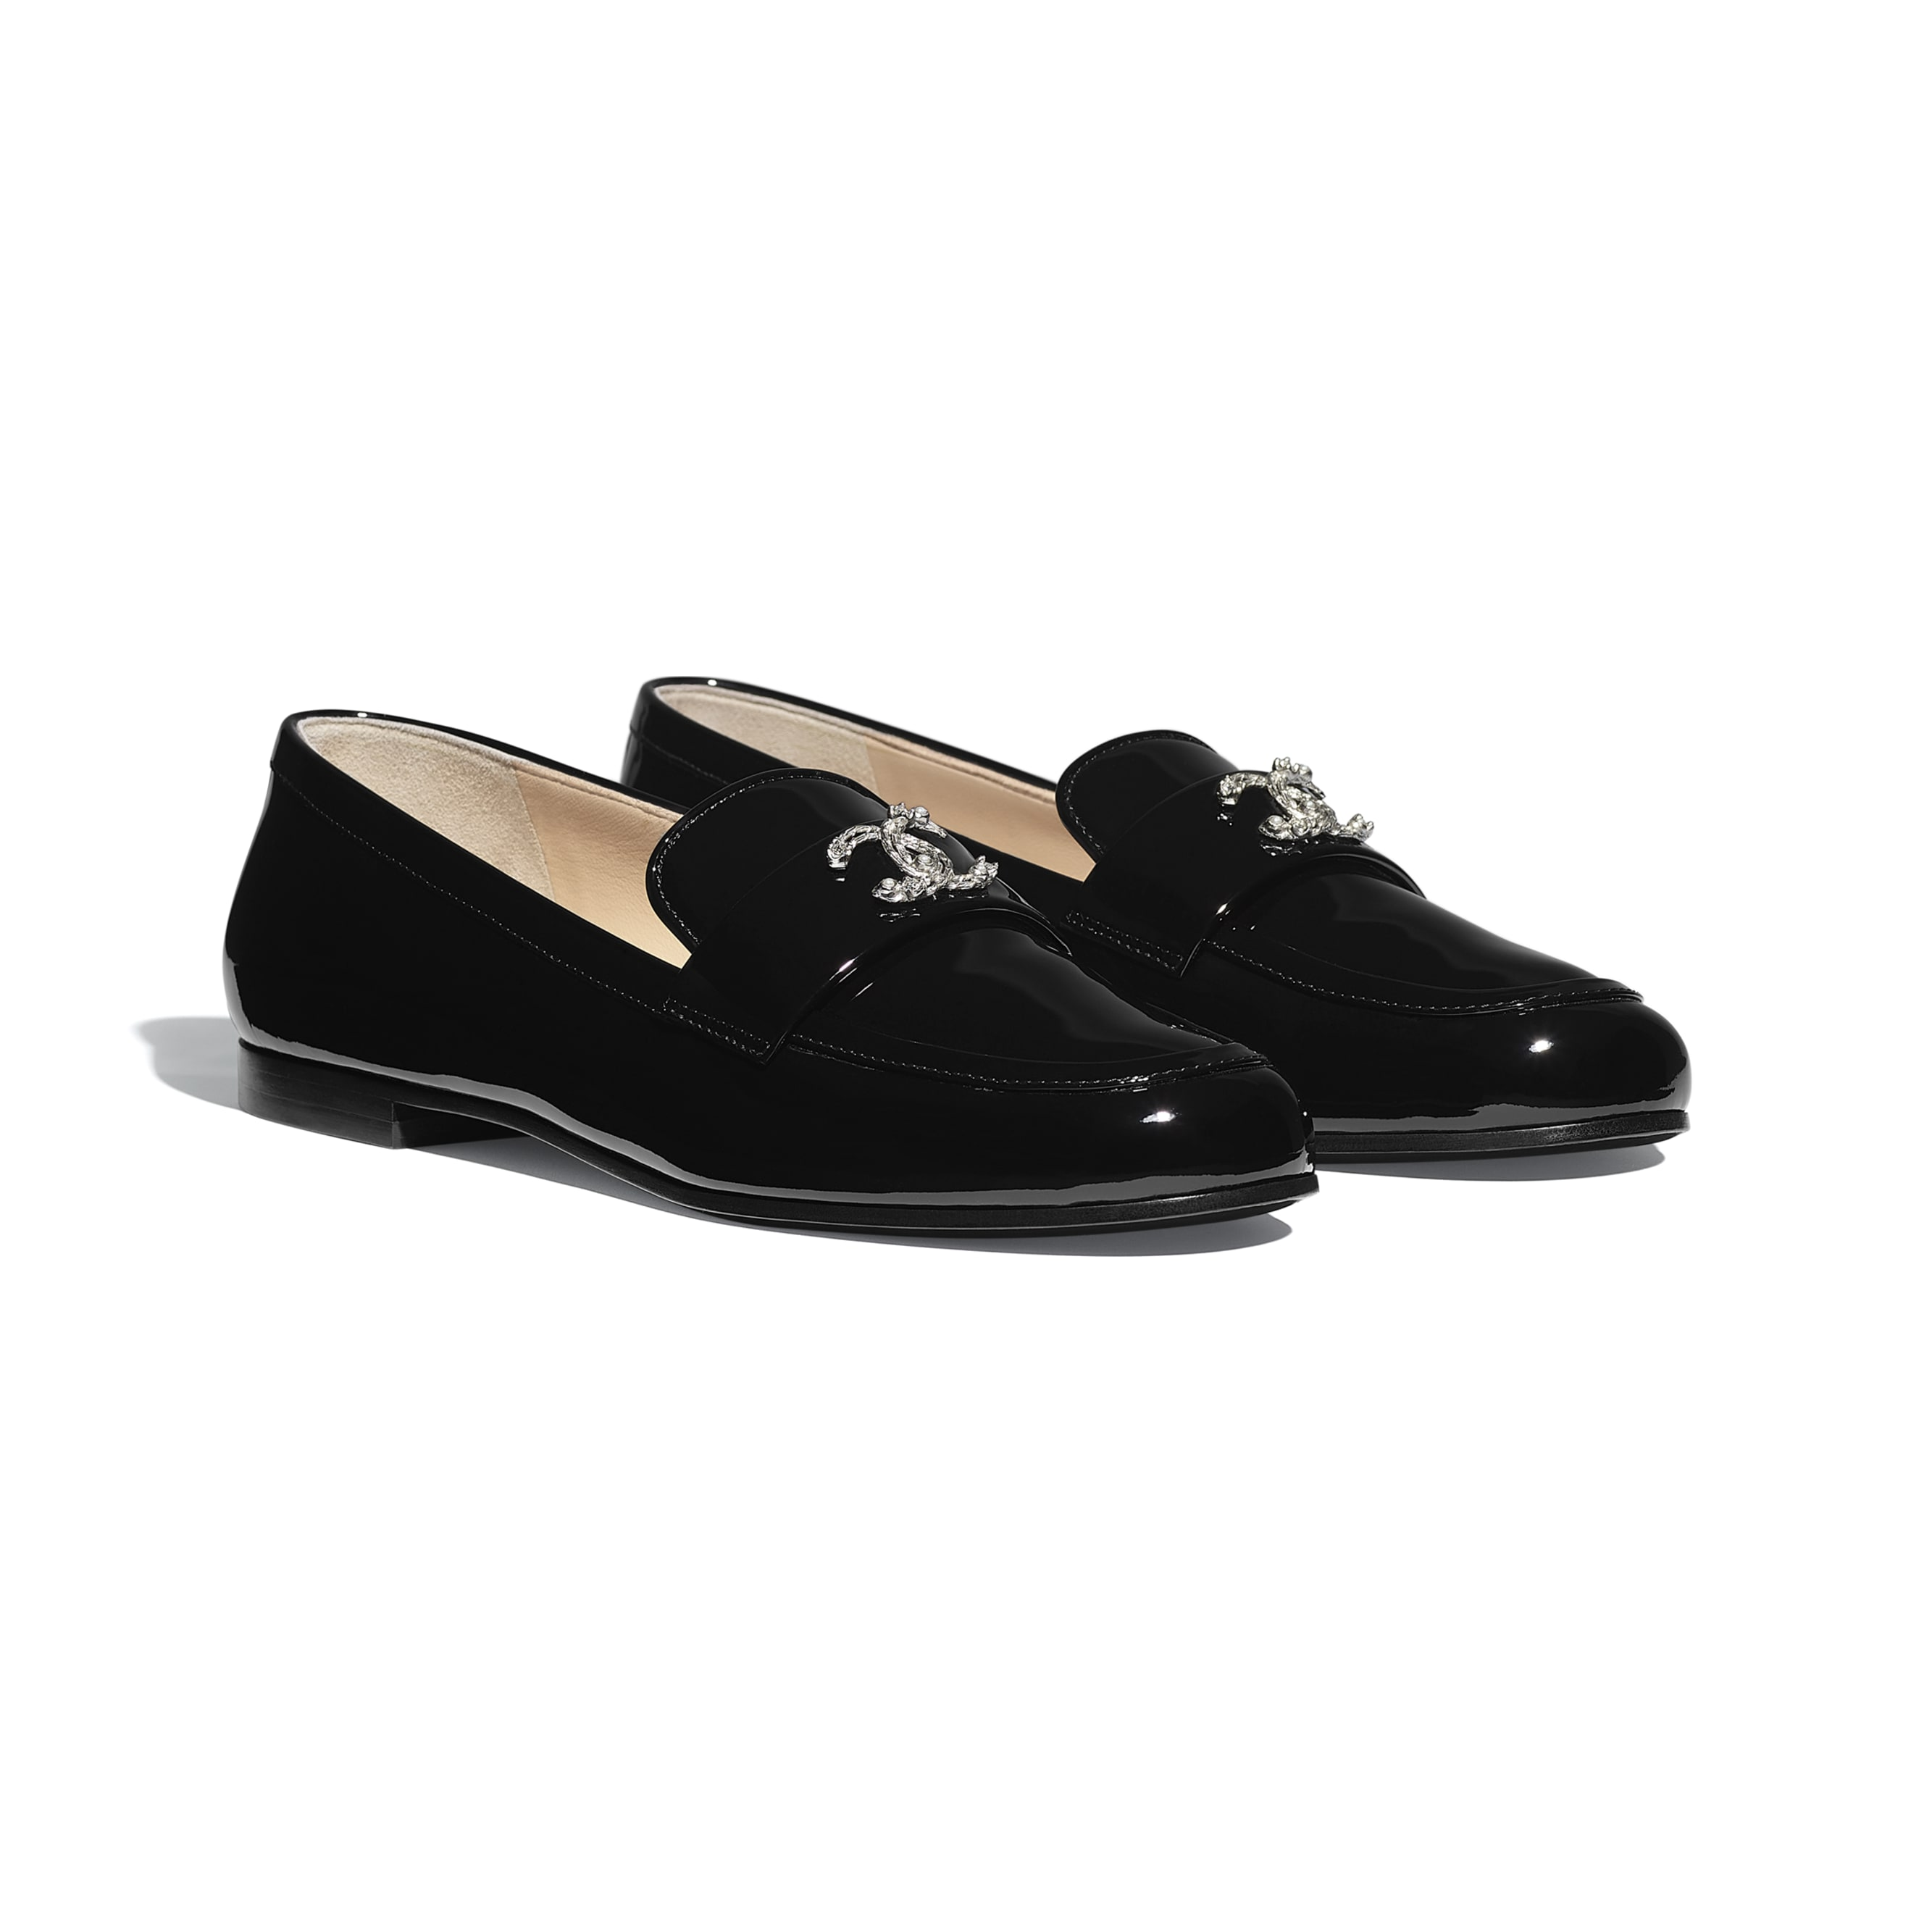 Loafers - Black - Patent Calfskin - CHANEL - Alternative view - see standard sized version